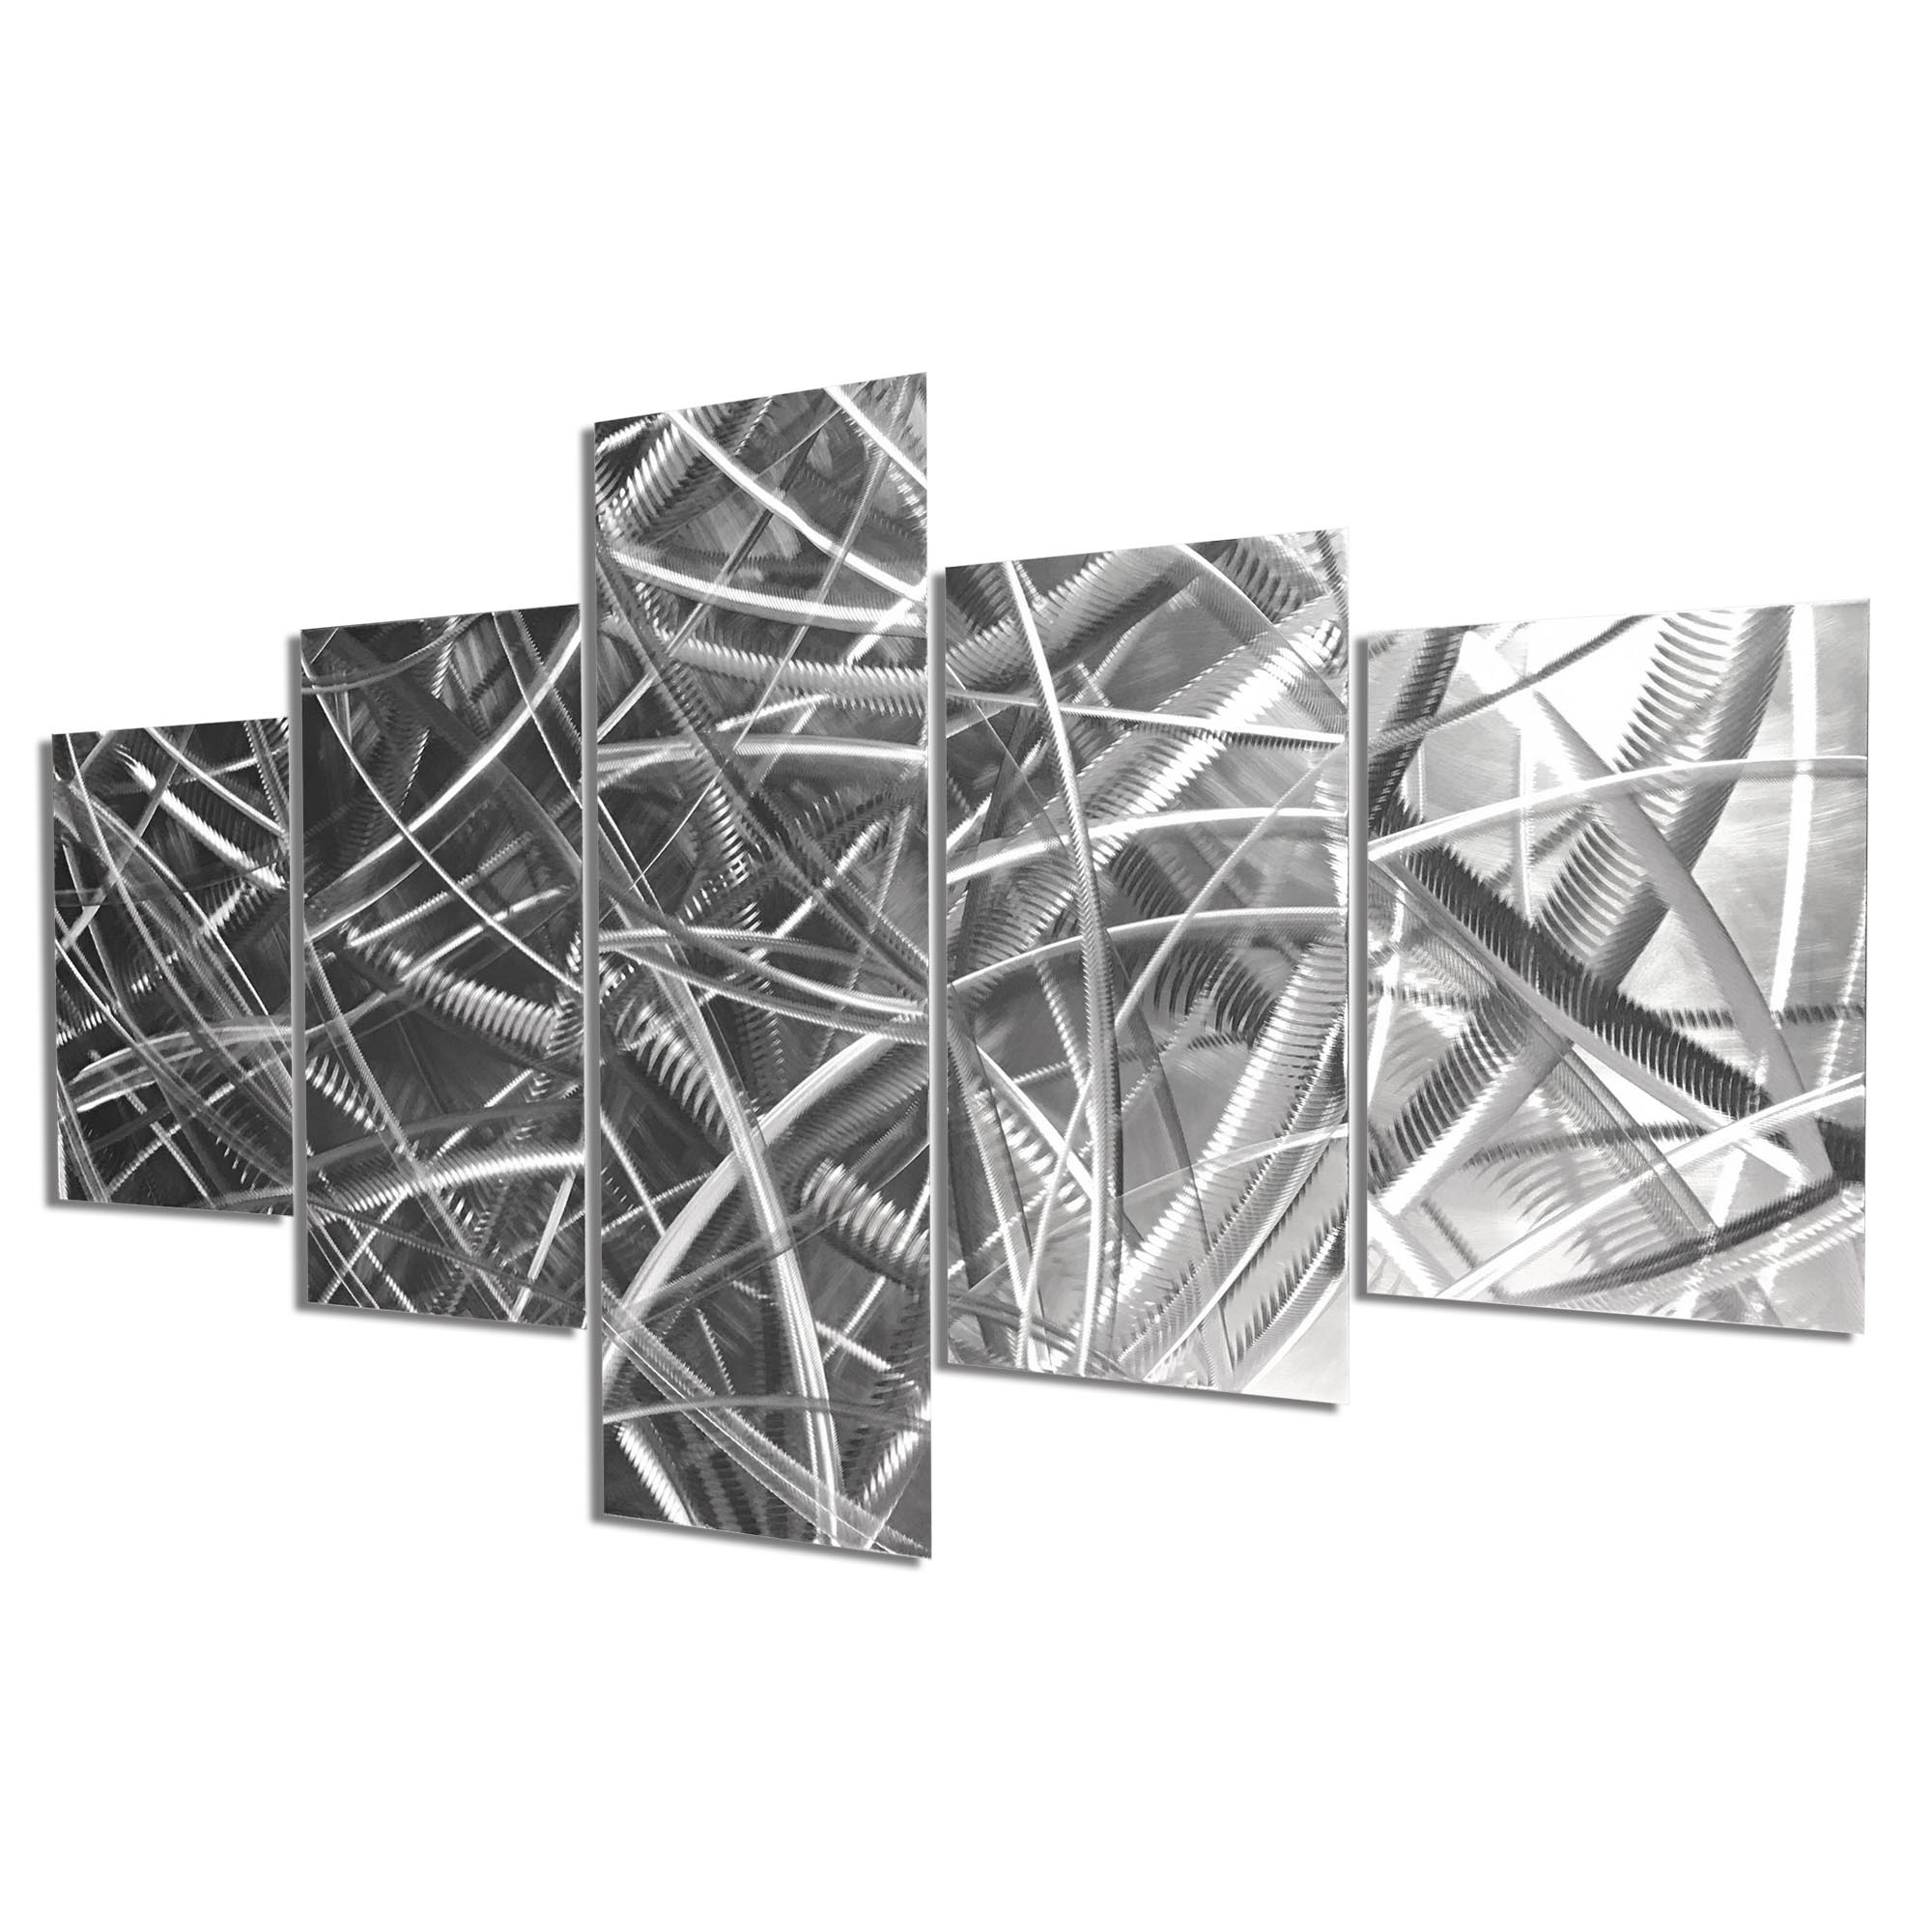 Columnar Fibers 64x36in. Natural Aluminum Abstract Decor - Image 2